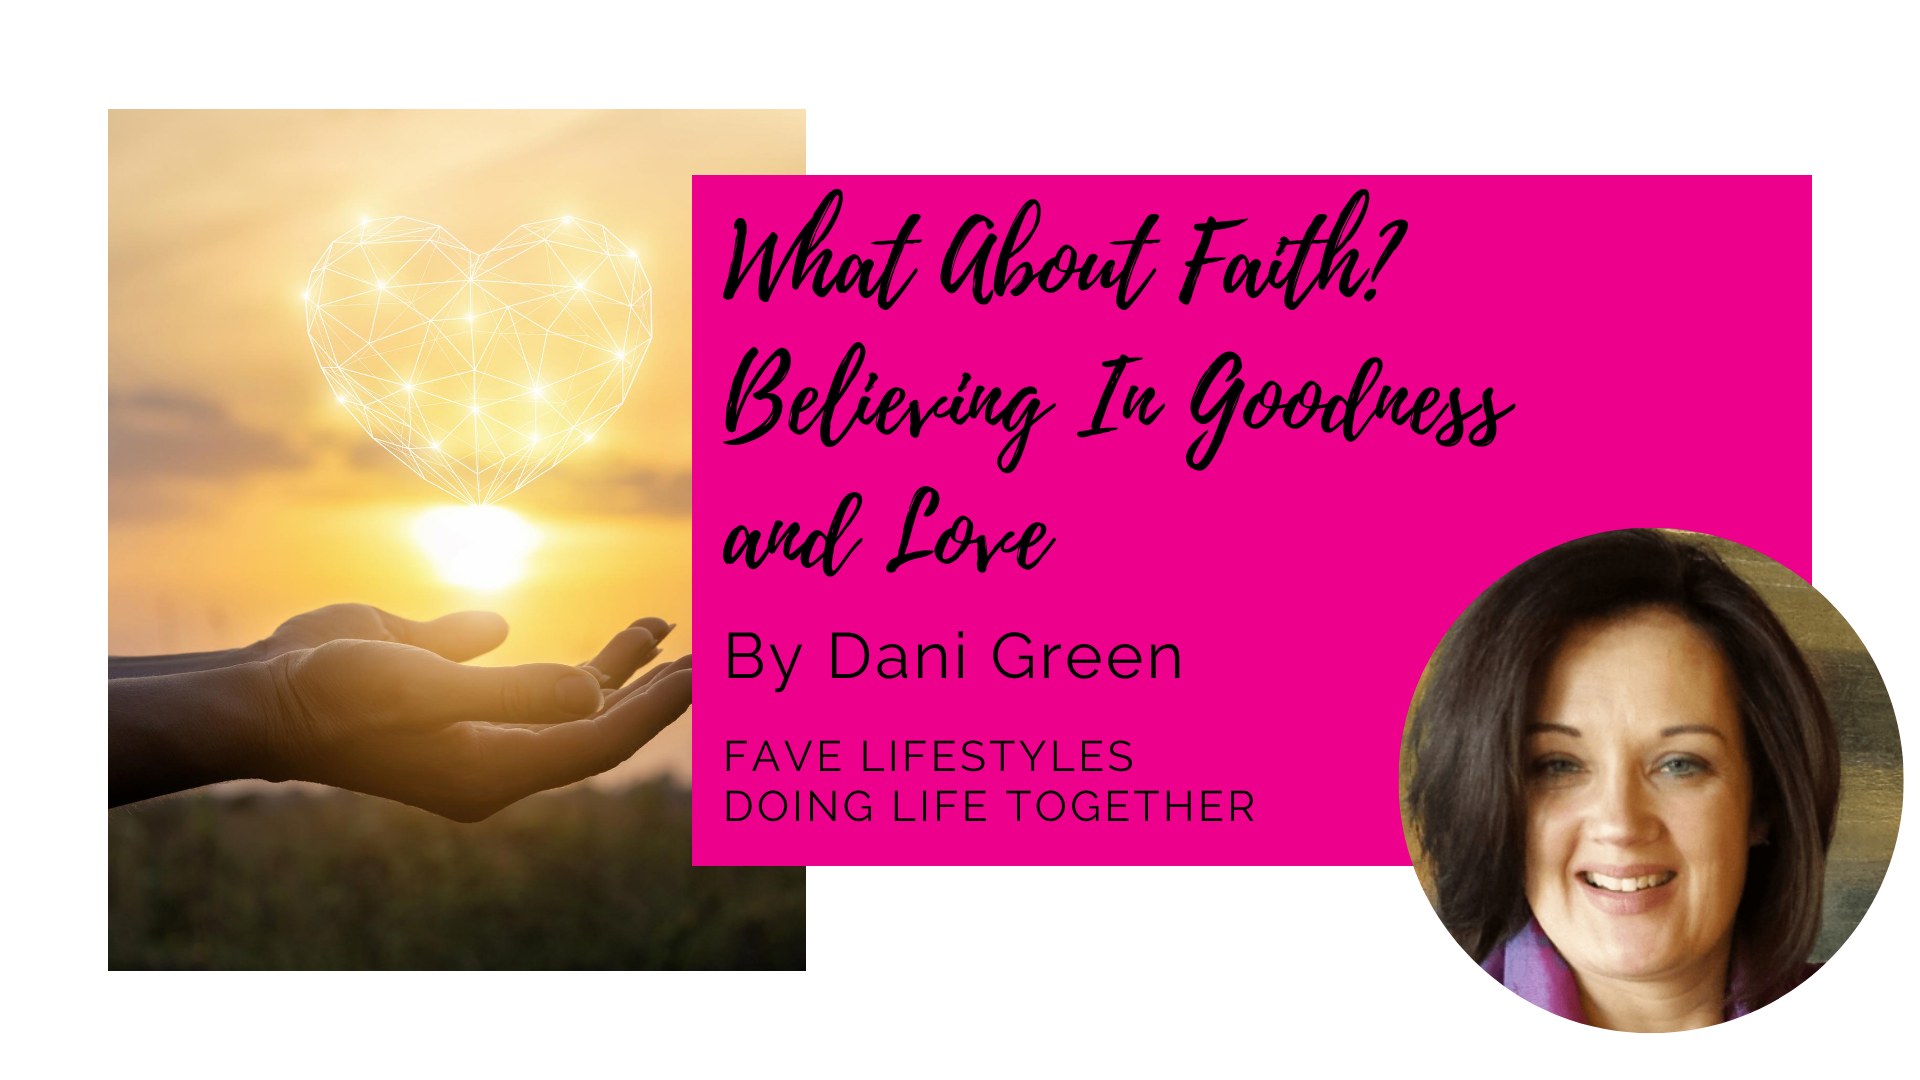 What About Faith? Believing In Goodness and Love